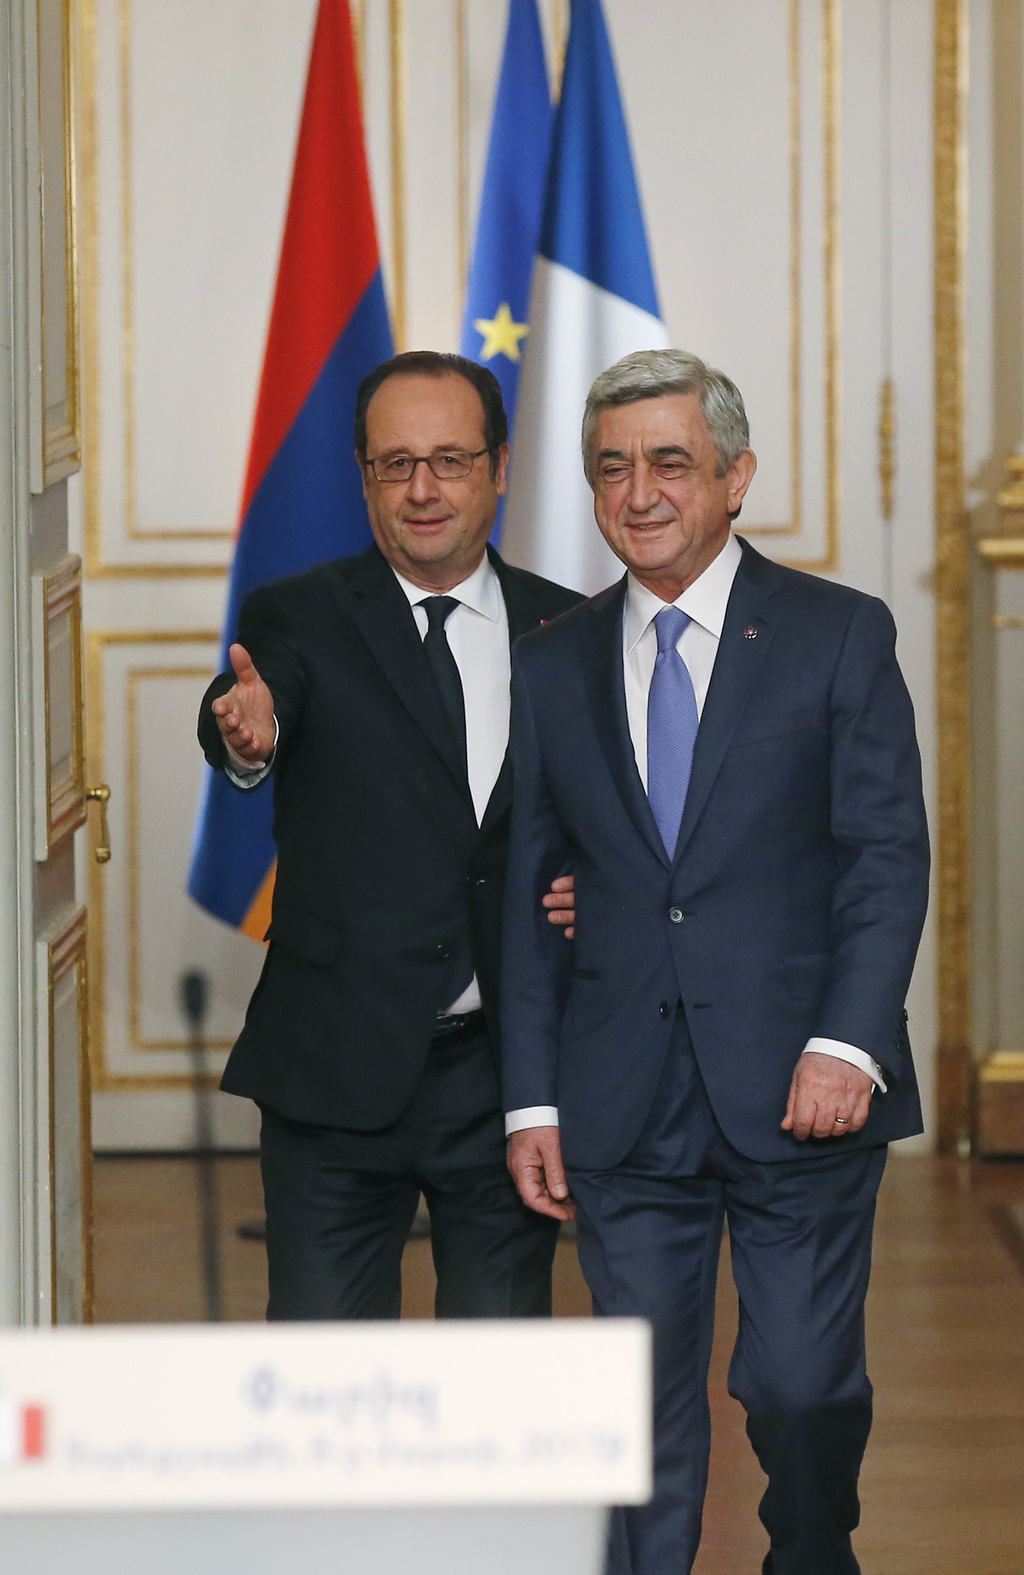 France's President Francois Hollande, left, and Armenia's President Serge Sarkissian arrive for a joint media conference at the Elysee ...